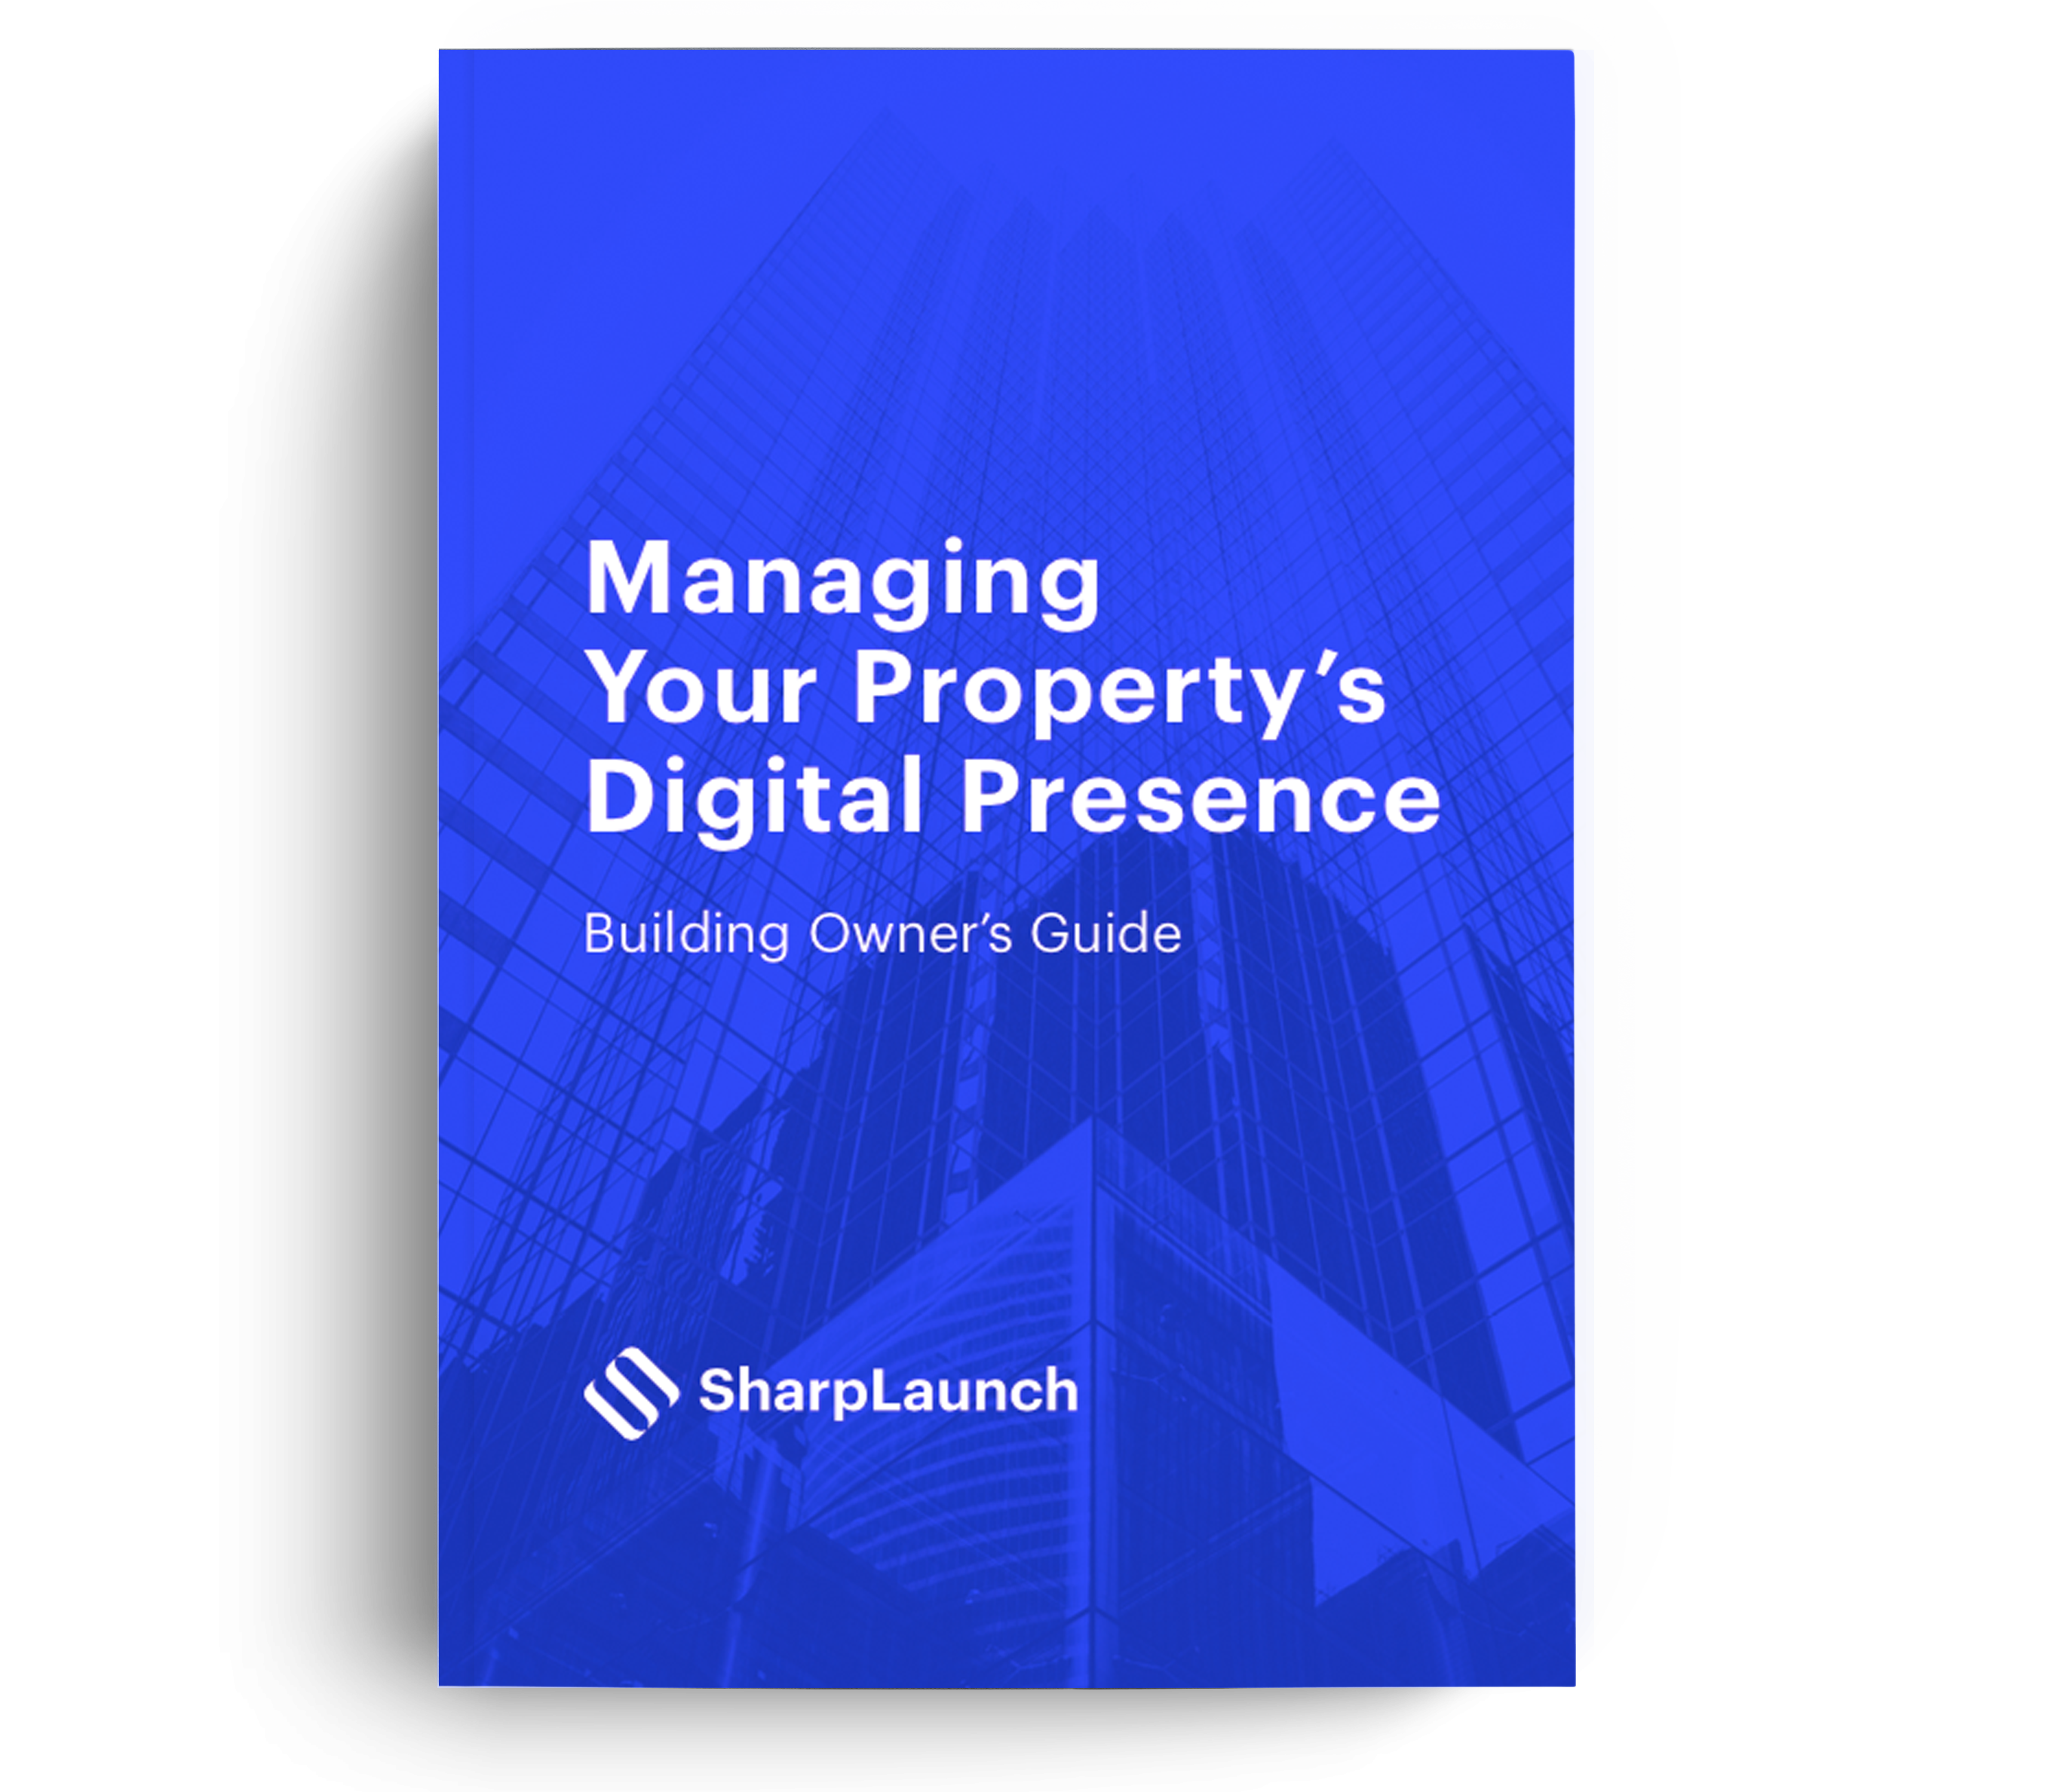 Managing Your Property's Digital Presence: Building Owner's Guide